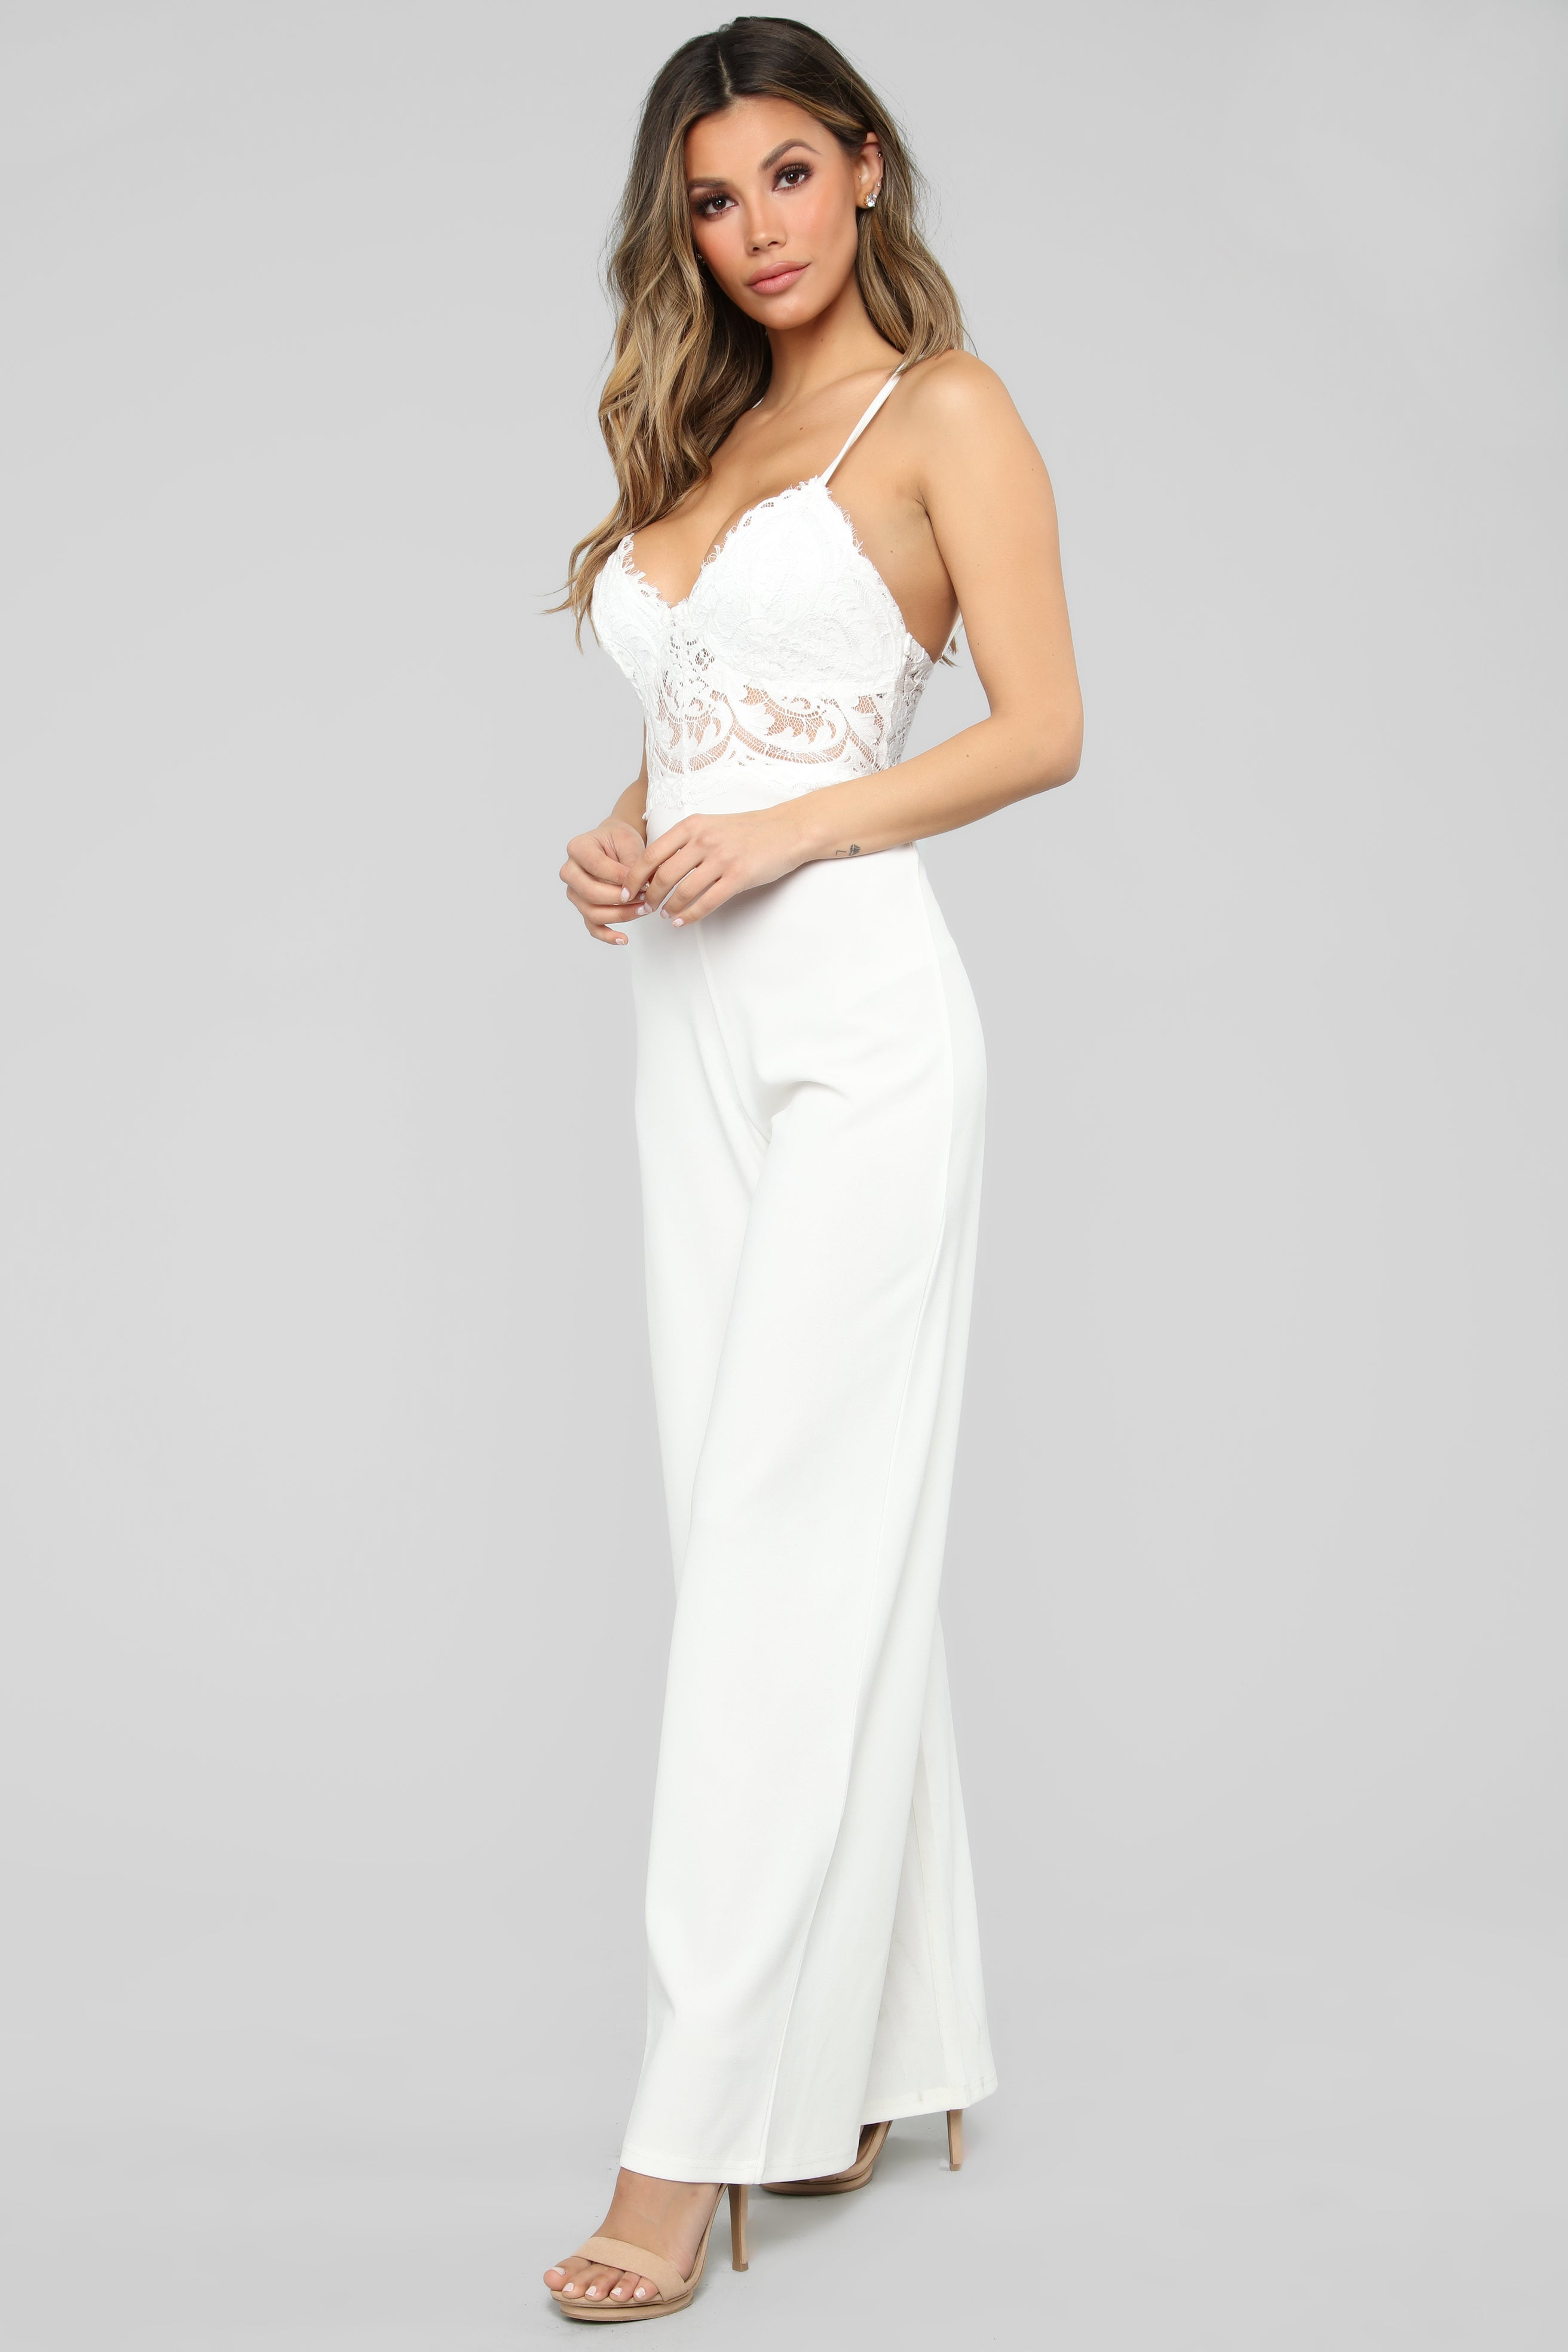 53fbf2be6f Roof Top Date Lace Jumpsuit - White